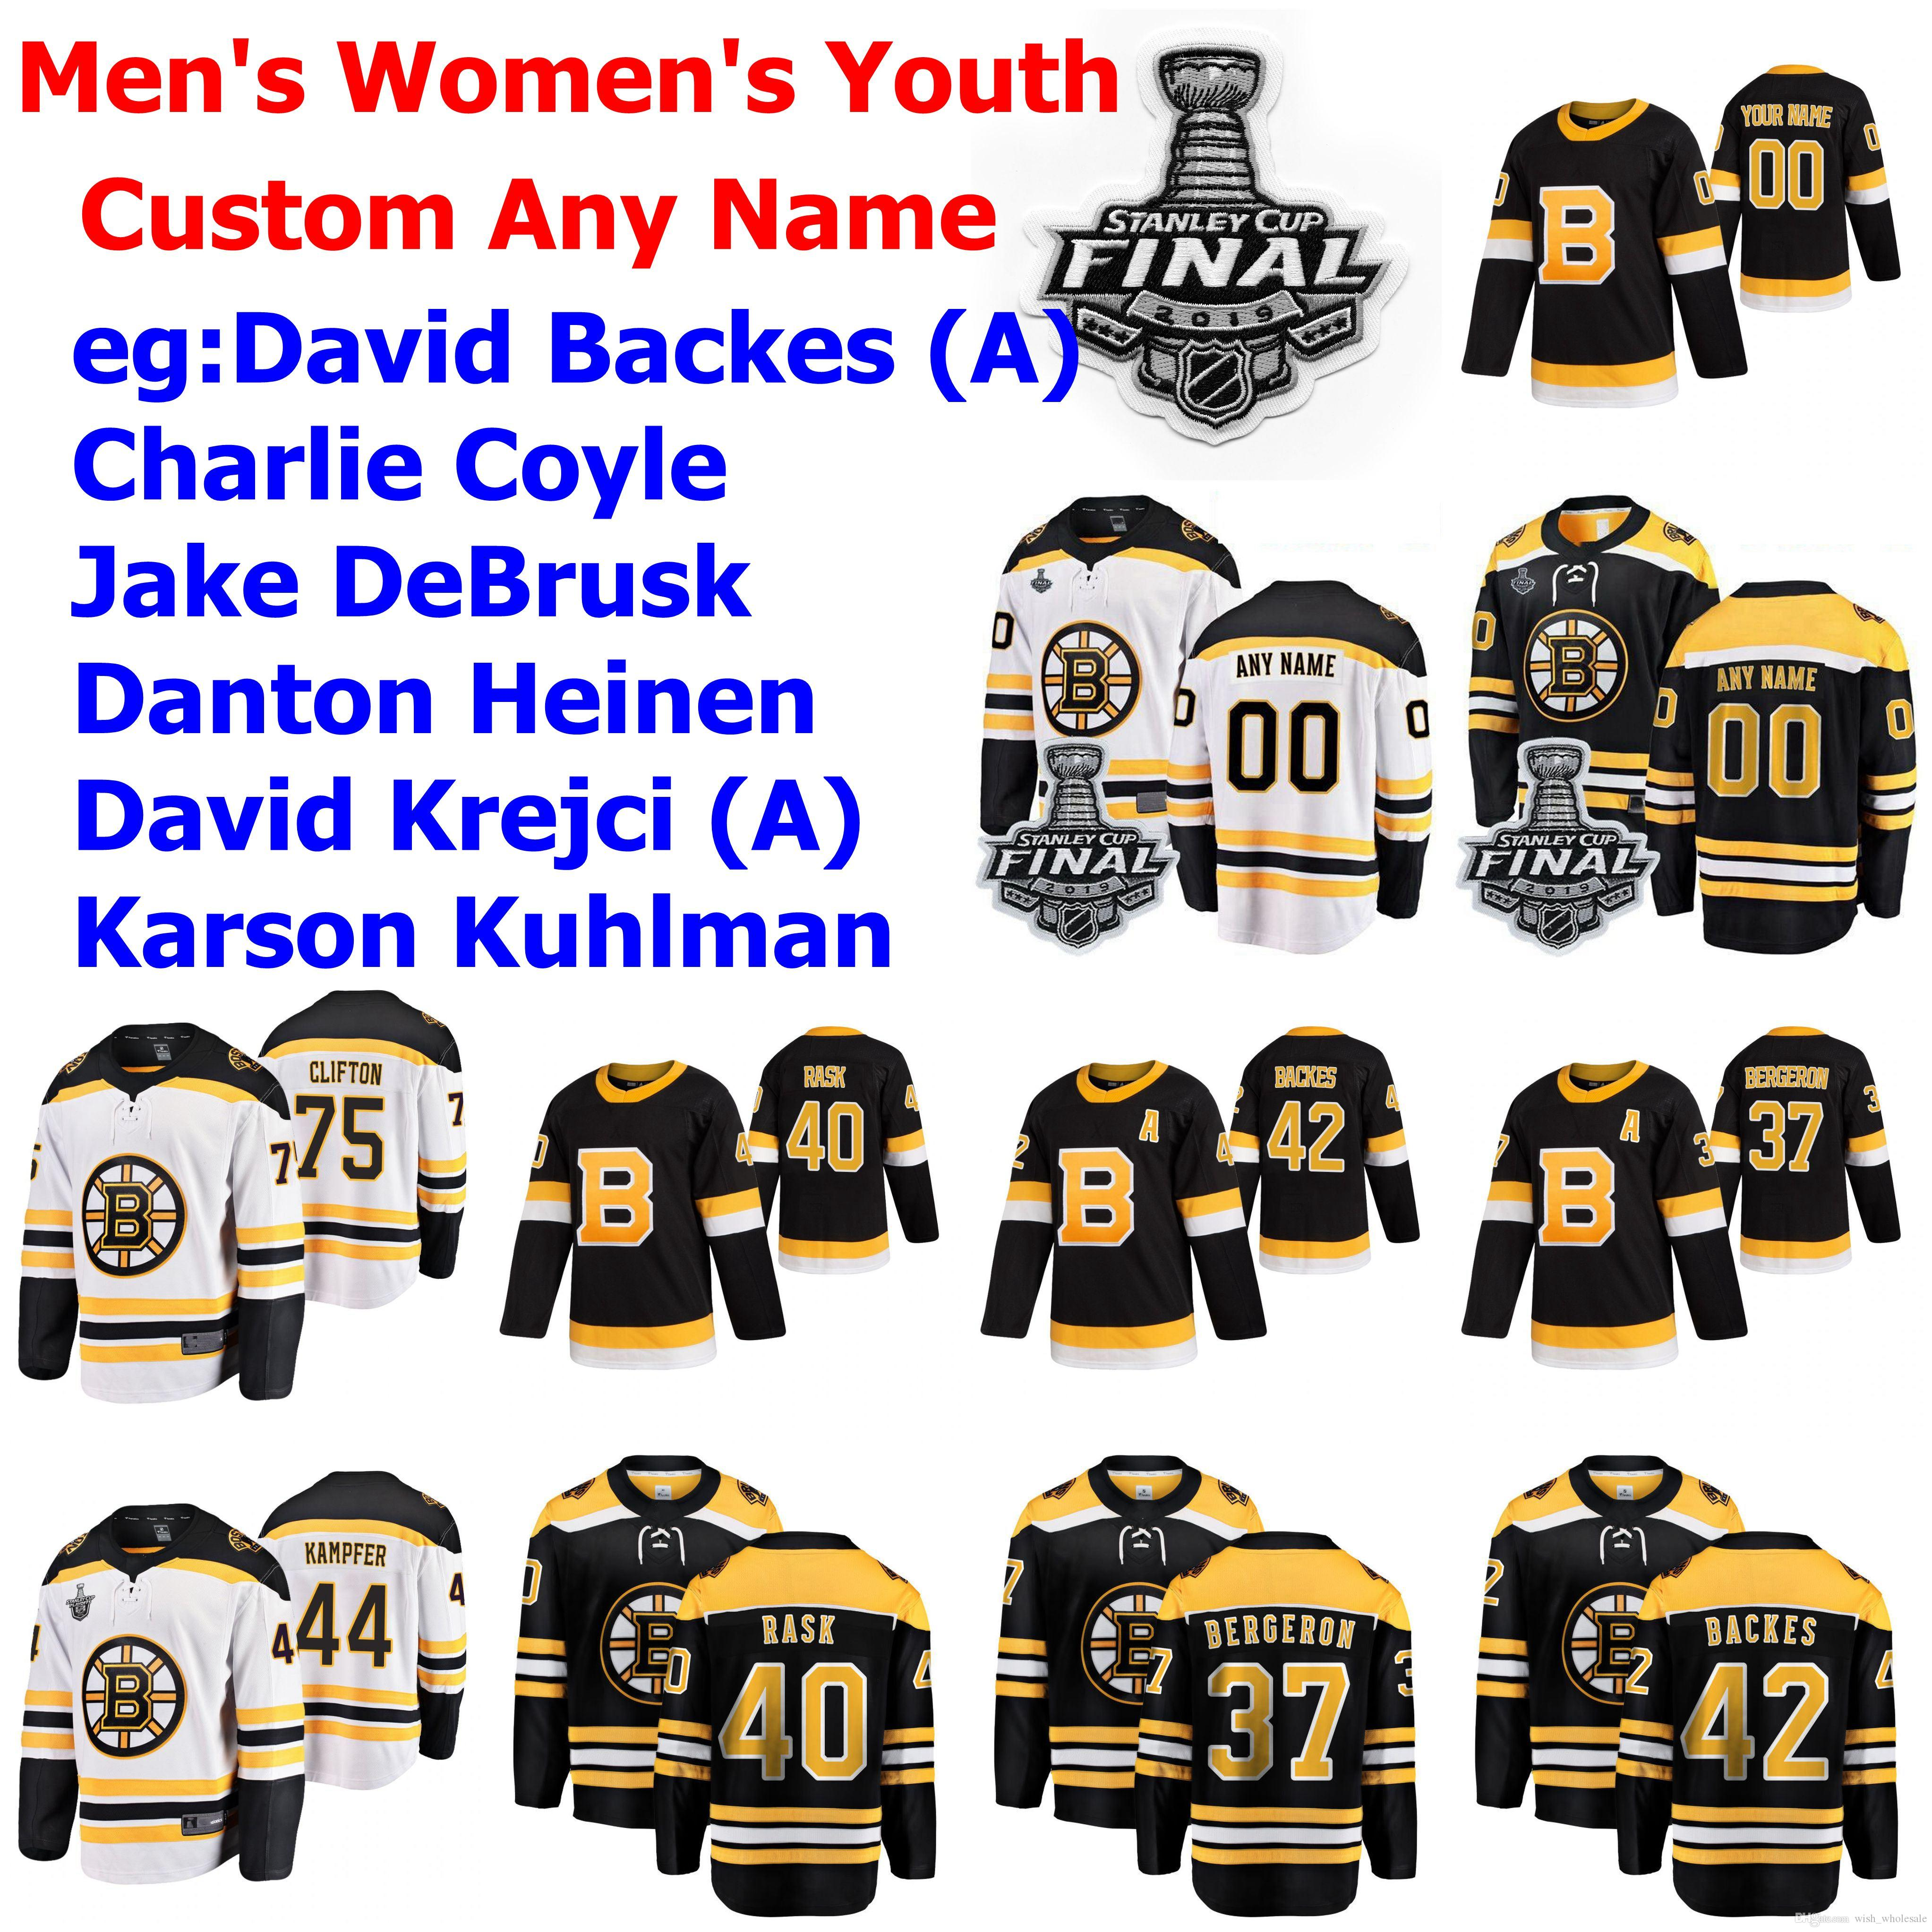 Stanley Cup Final Boston Bruins Jerseys Youth Kids Joakim Nordstrom Jersey Senyshyn Wagner Ritchie Studnicka Hockey Jerseys Custom Stitched